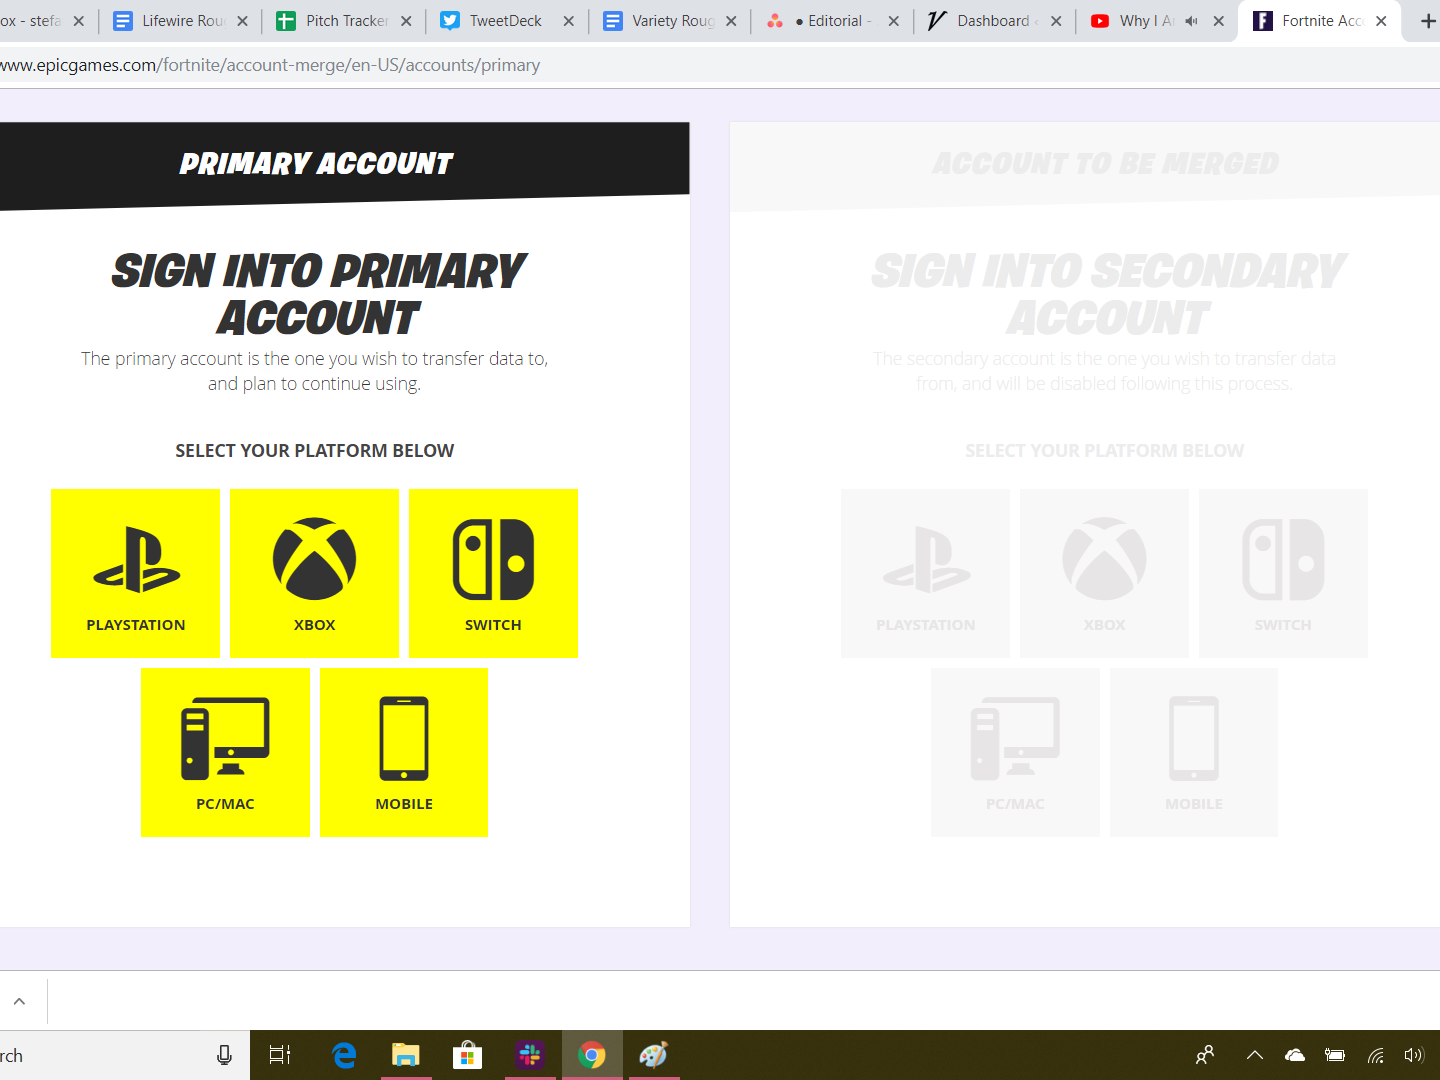 How To Merge Fortnite Accounts Fortnite account generator, fortnite free account generator skins ps4, x box fortnite is now one of the most played games in the world. how to merge fortnite accounts